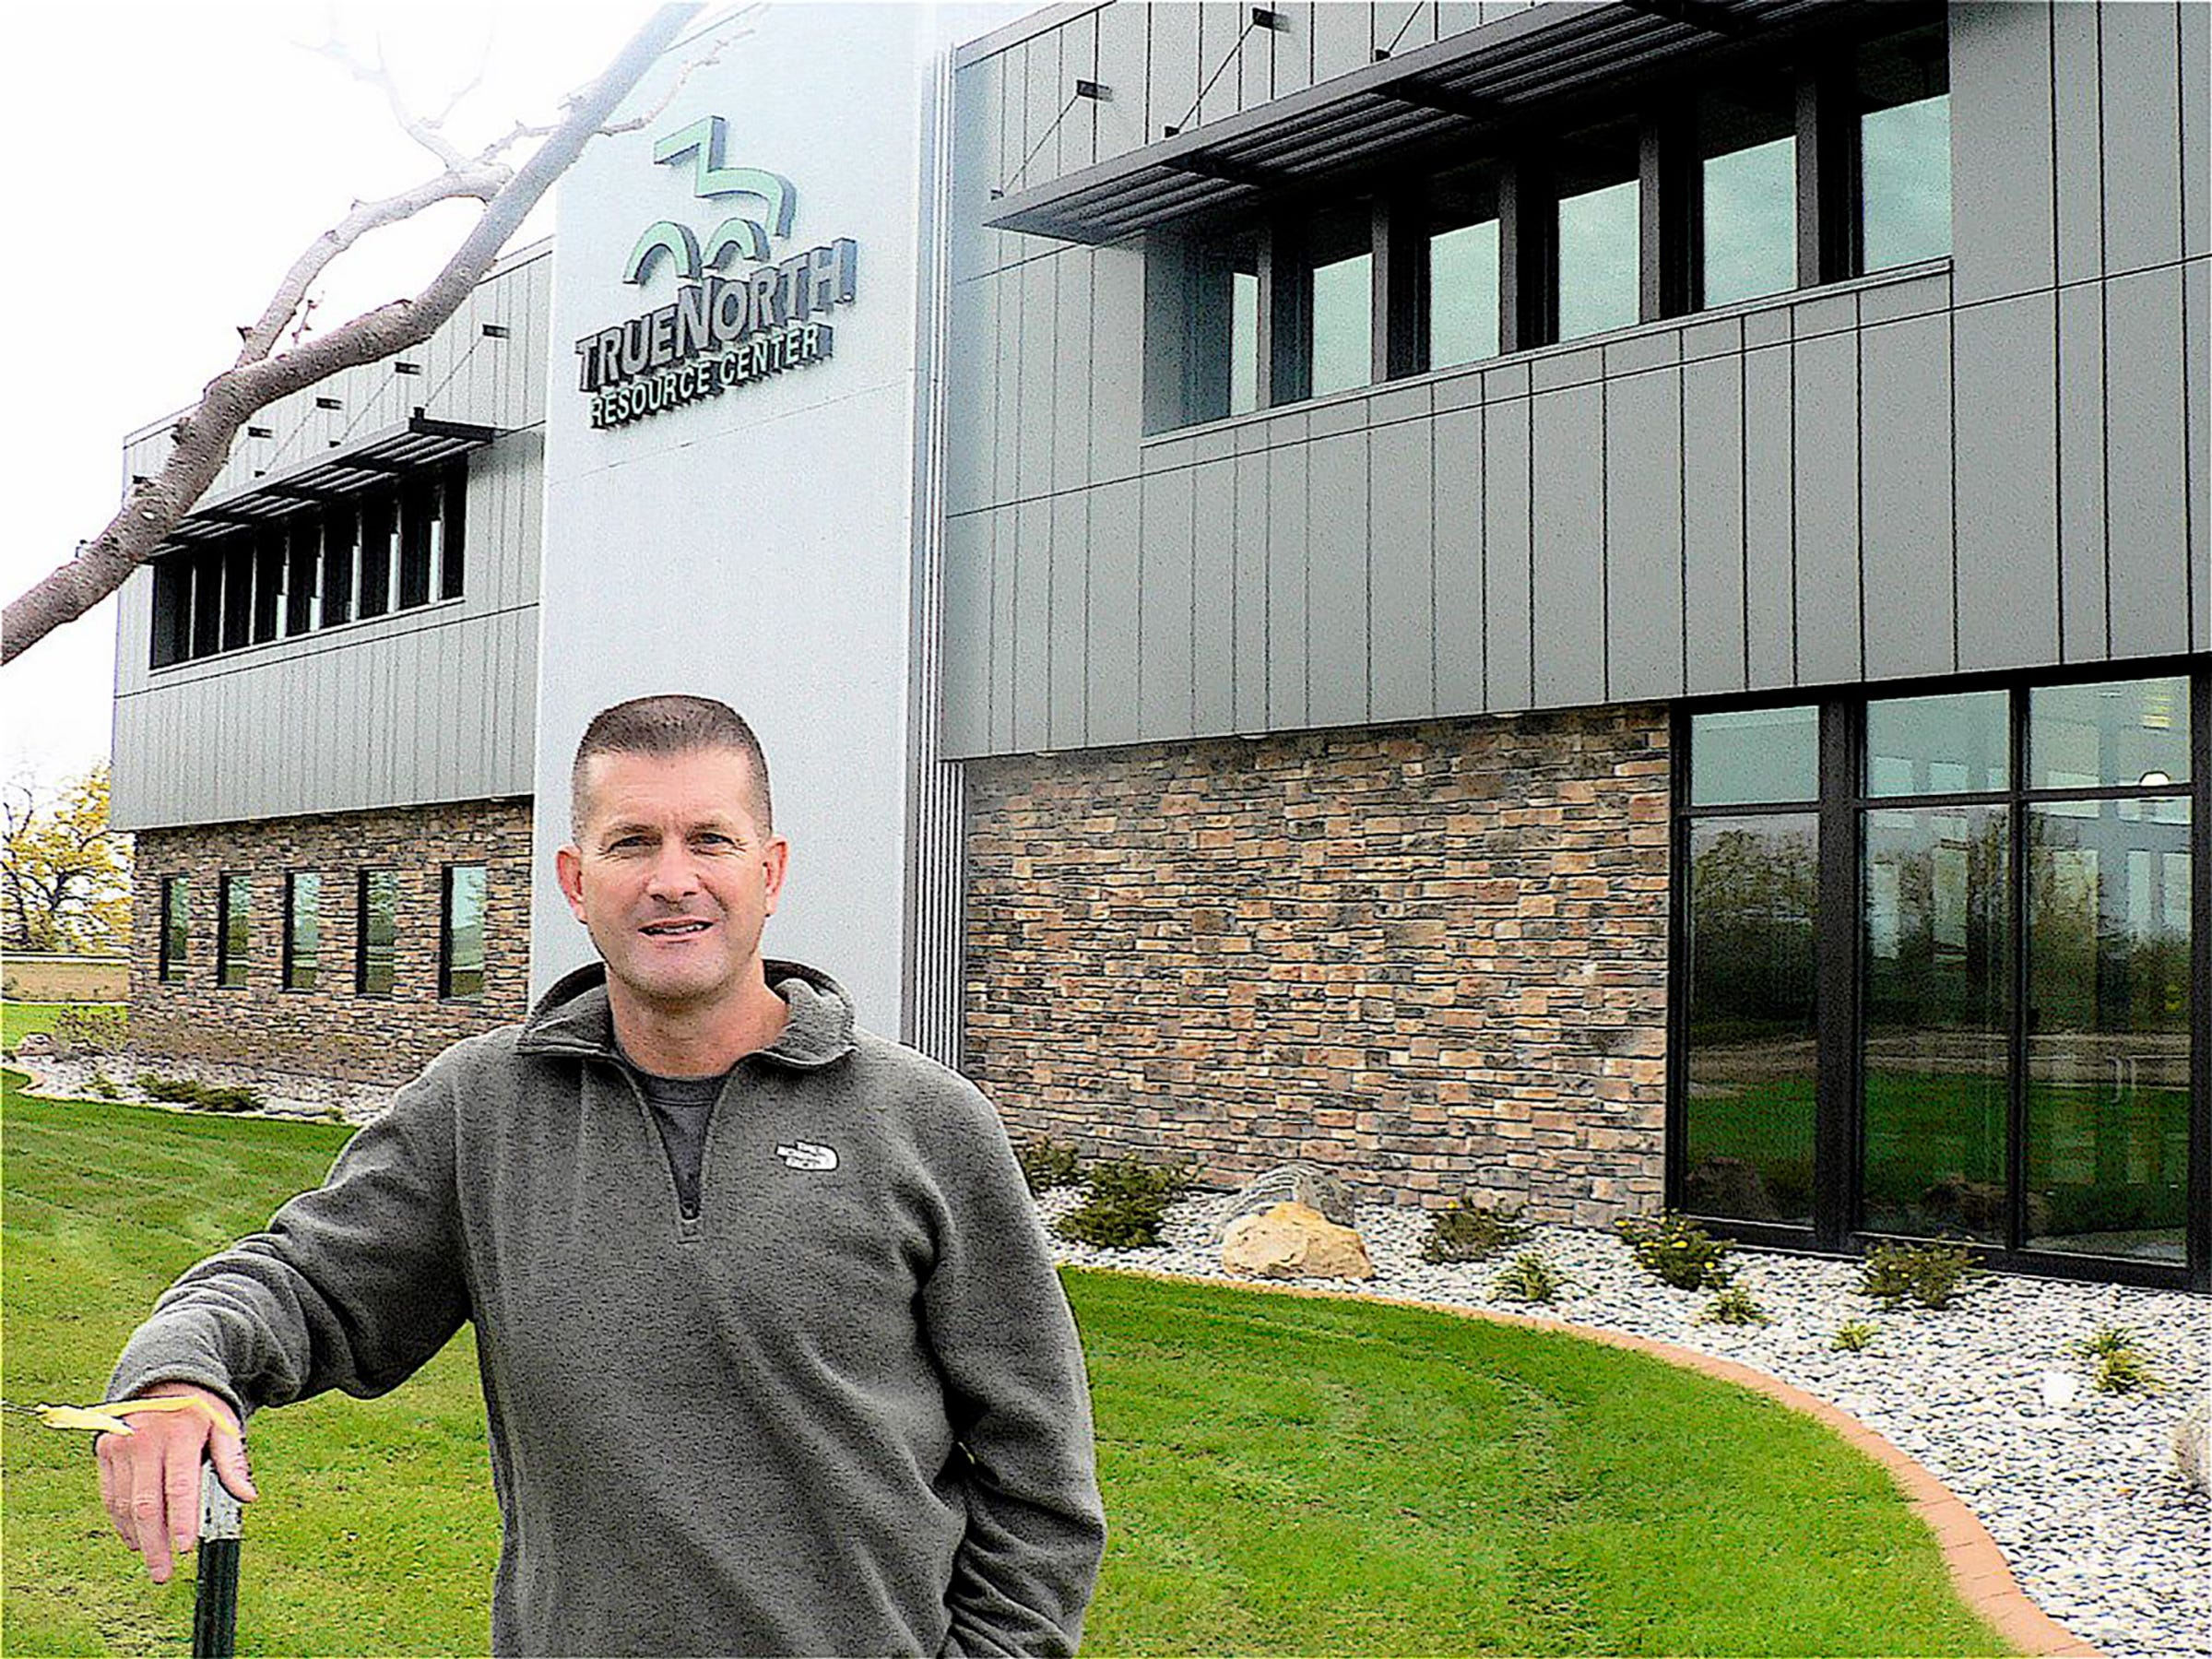 John C, Oncken poses in front of the True North Resource Center.